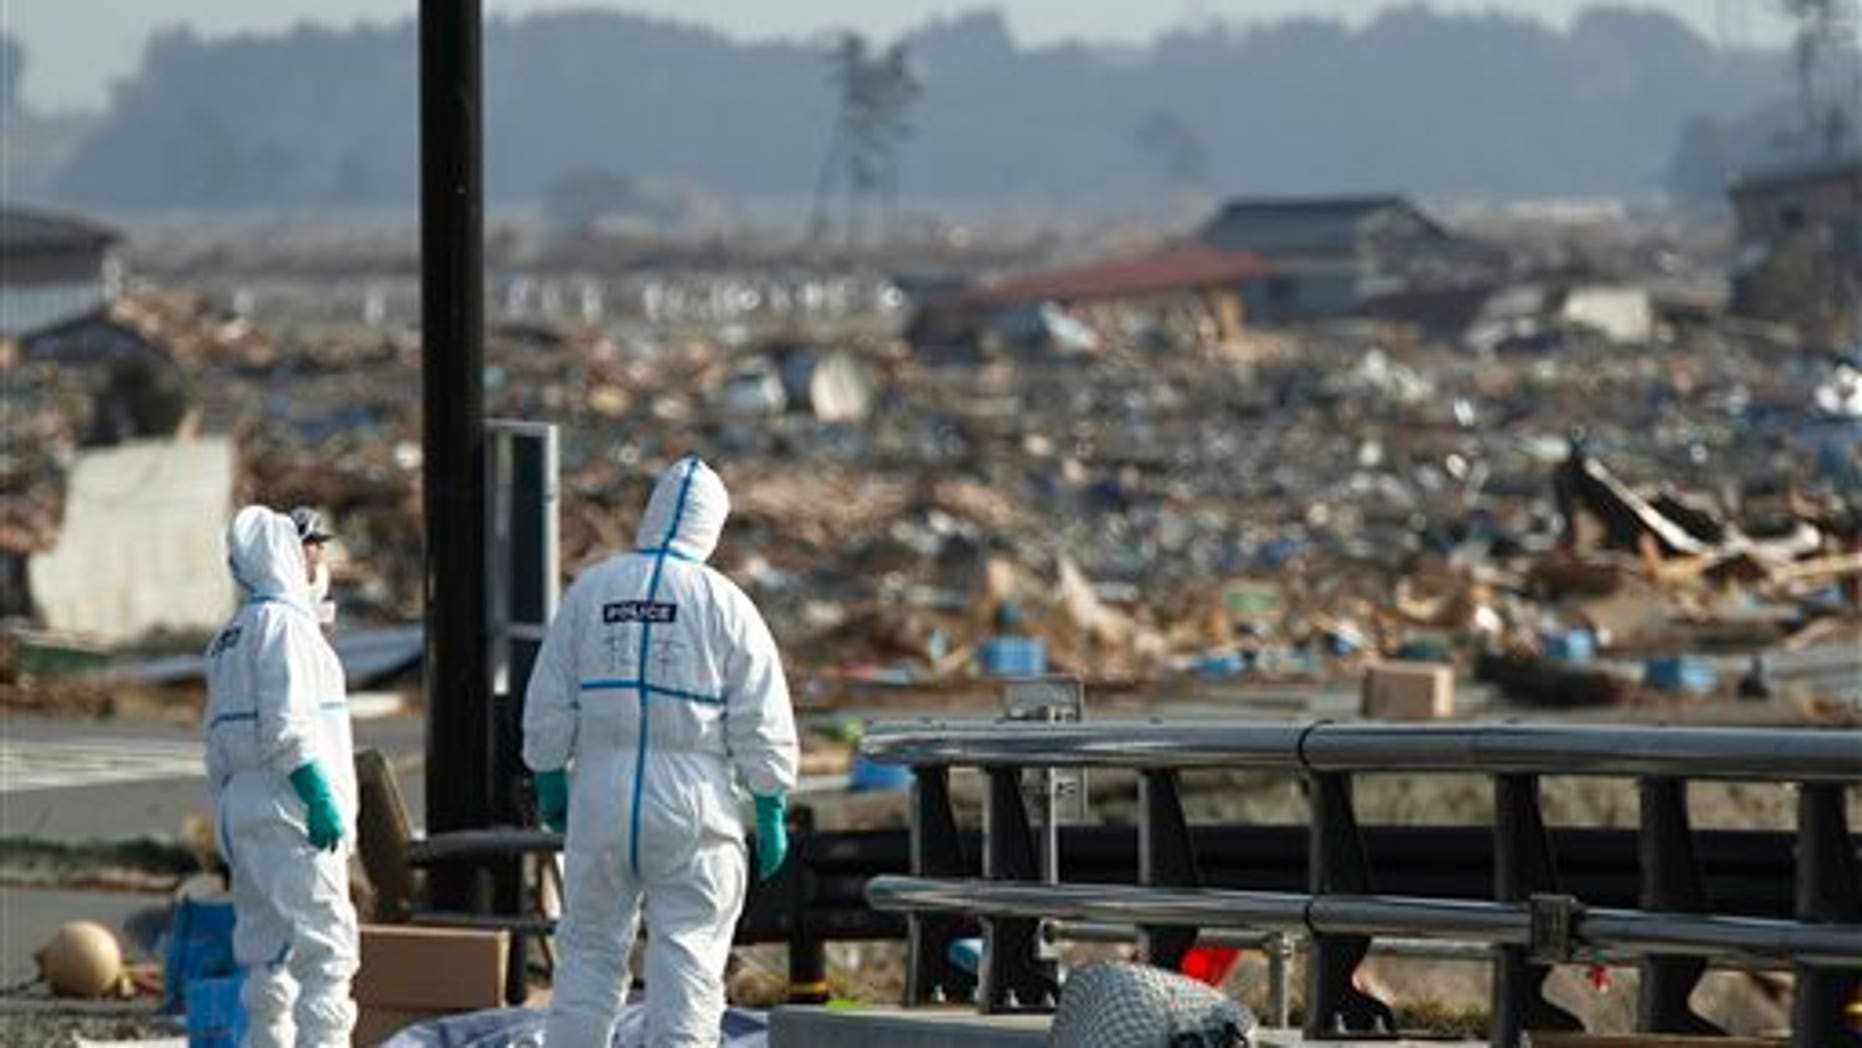 April 15: Japanese police officers stand by bodies of victims while searching for missing people at a devastated area in Namie of Fukushima Prefecture, northeastern Japan. In the background is part of the Fukushima Dai-ichi nuclear complex. (AP)